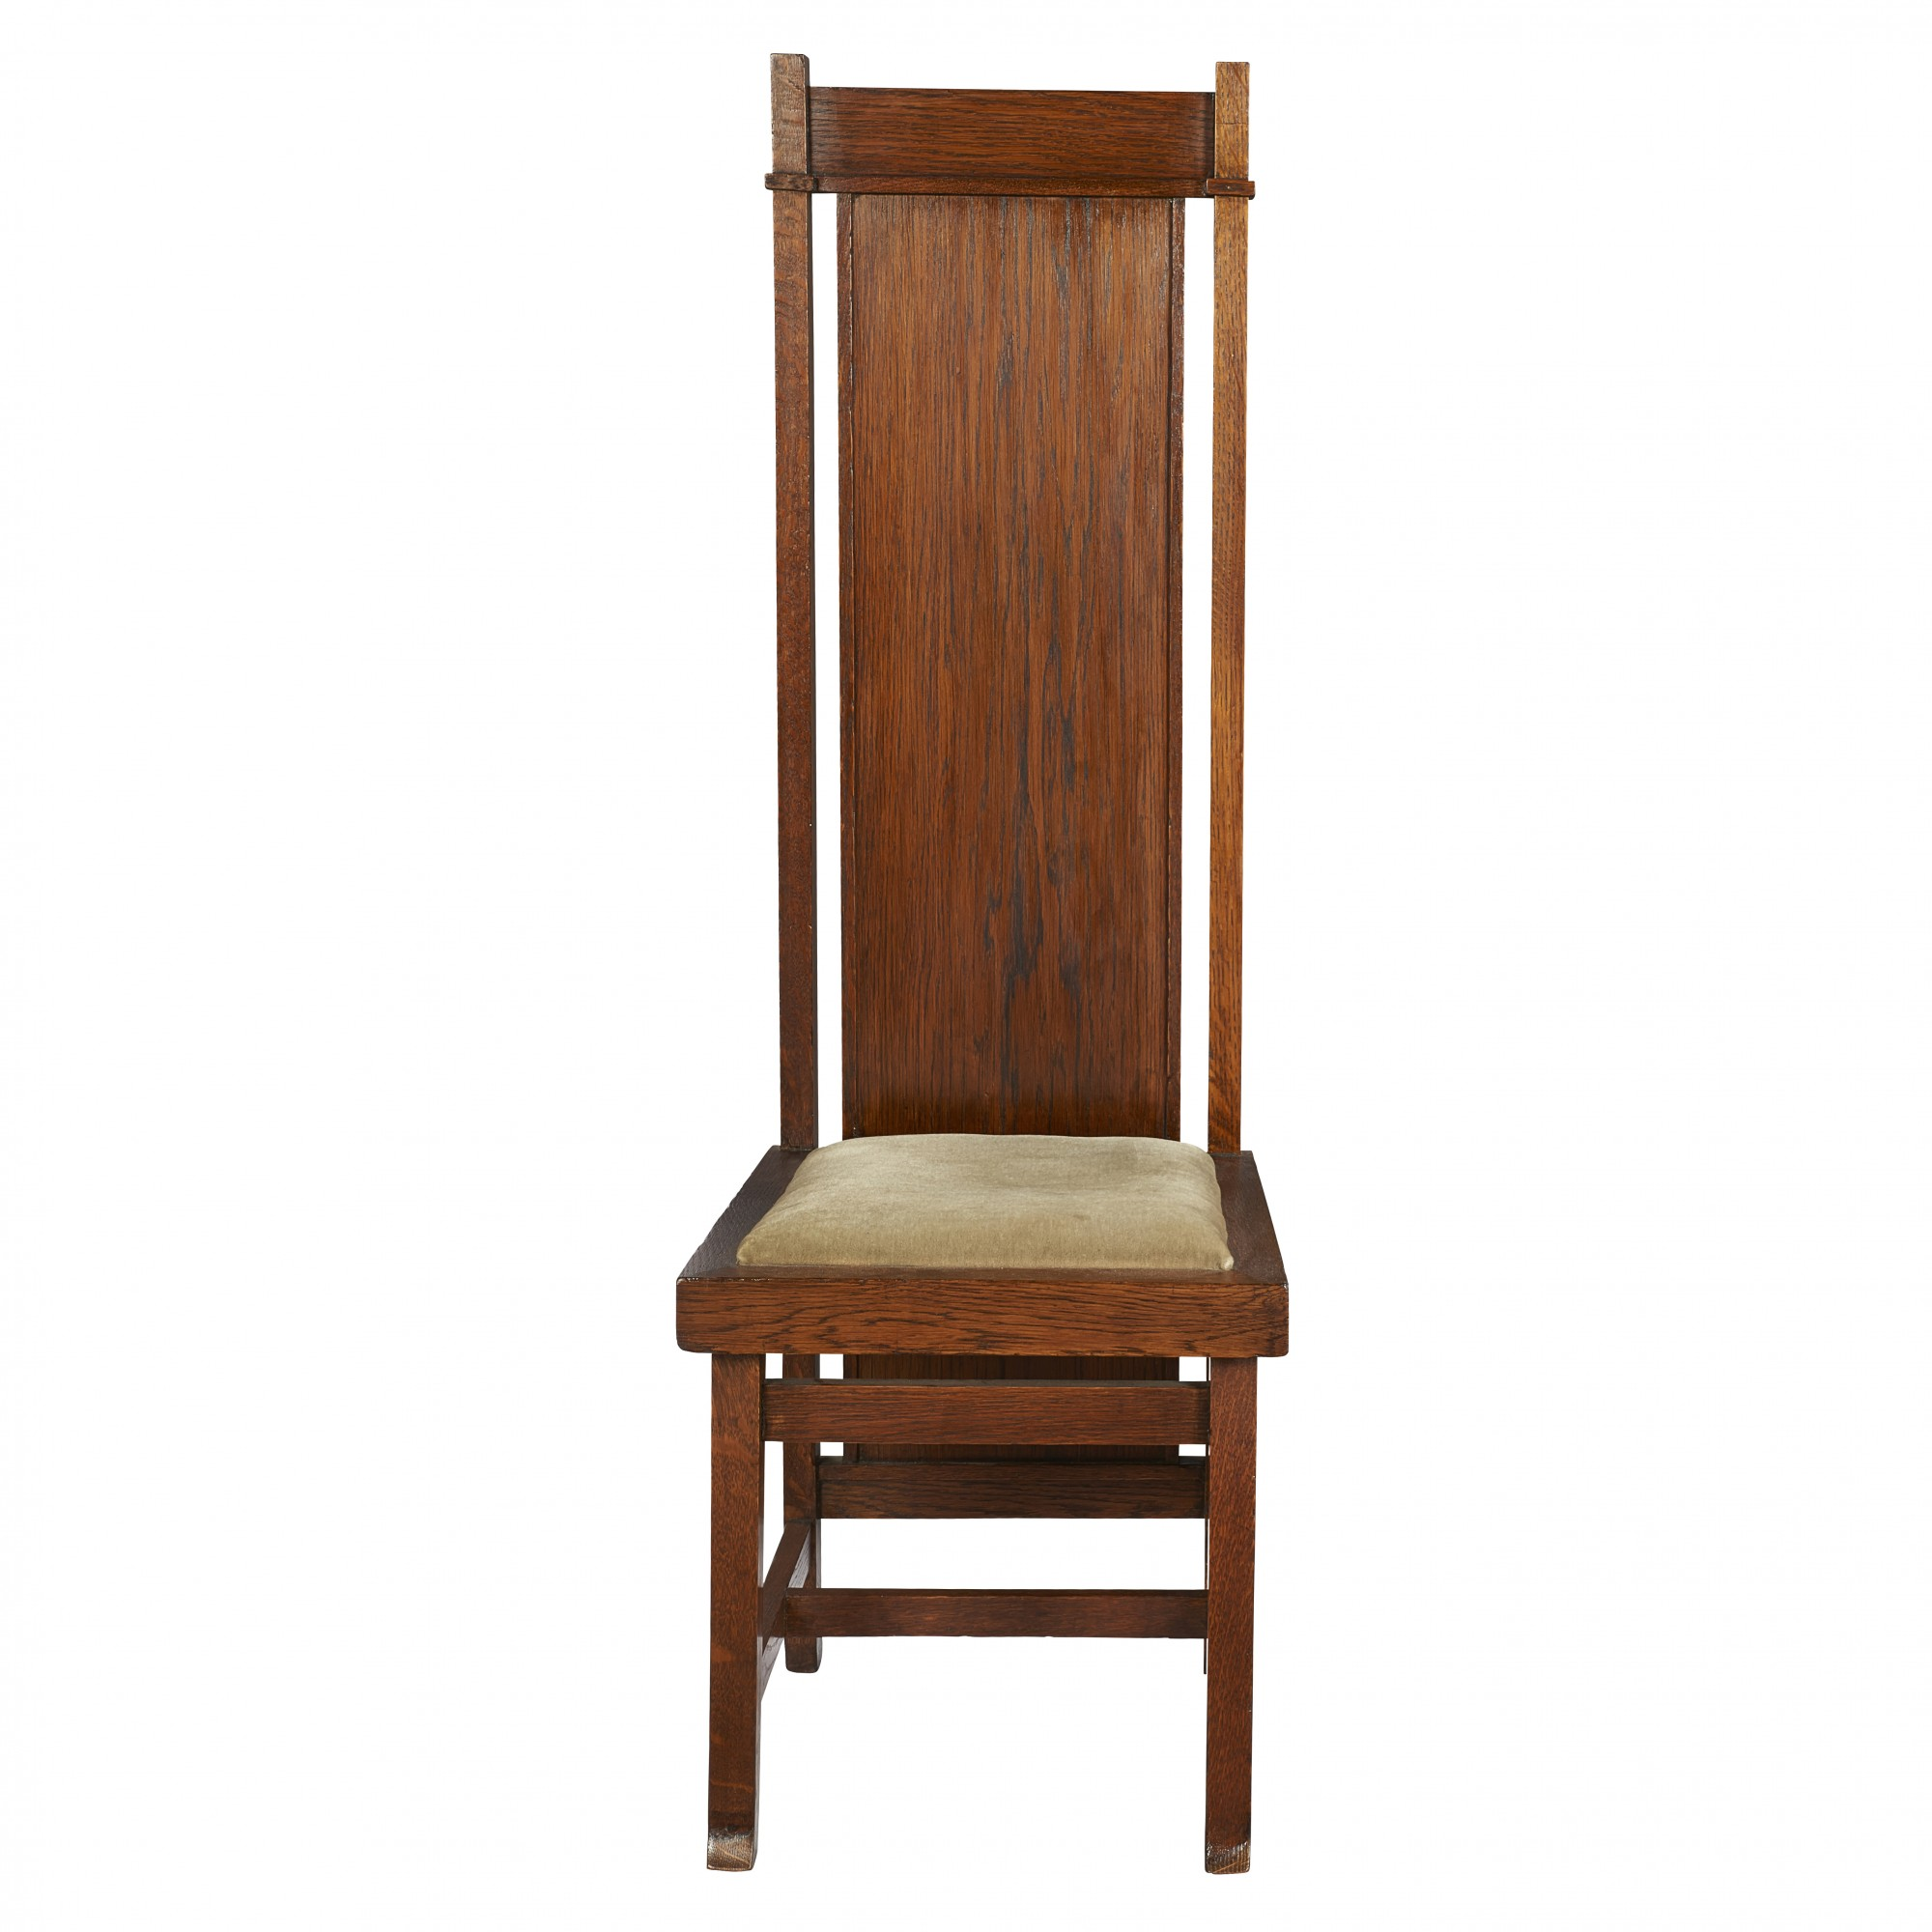 Charmant Frank Lloyd Wright Chair